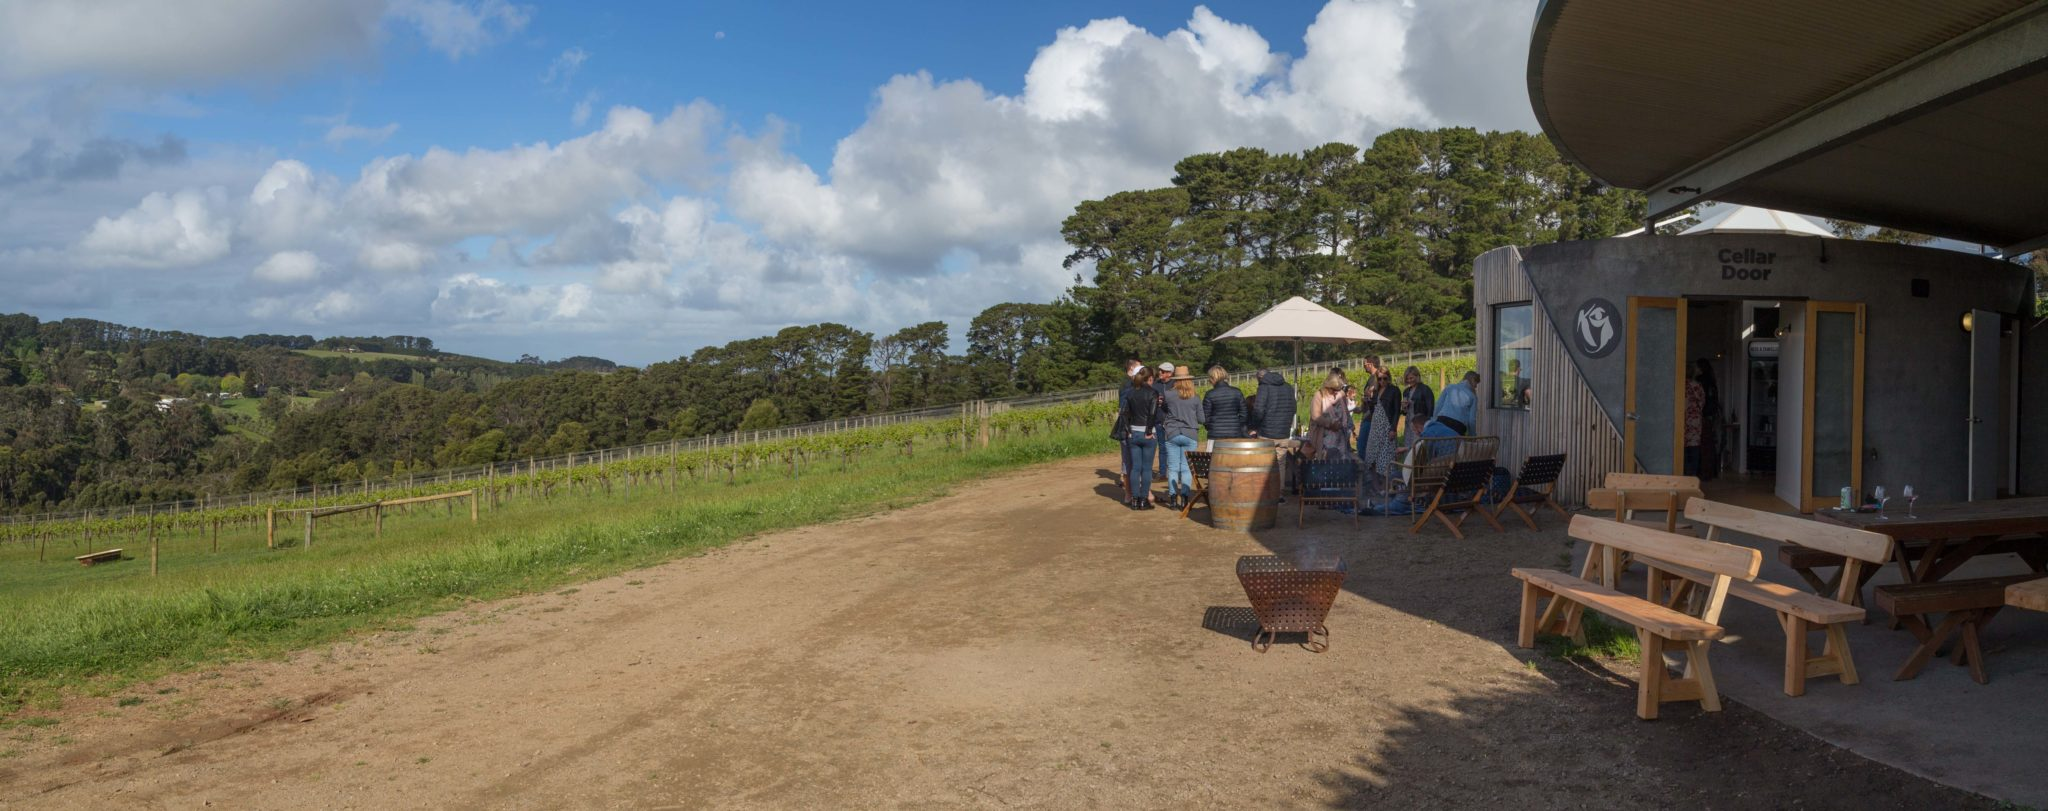 MORNINGTON-PENINSULA-WINERY-TOUR-27